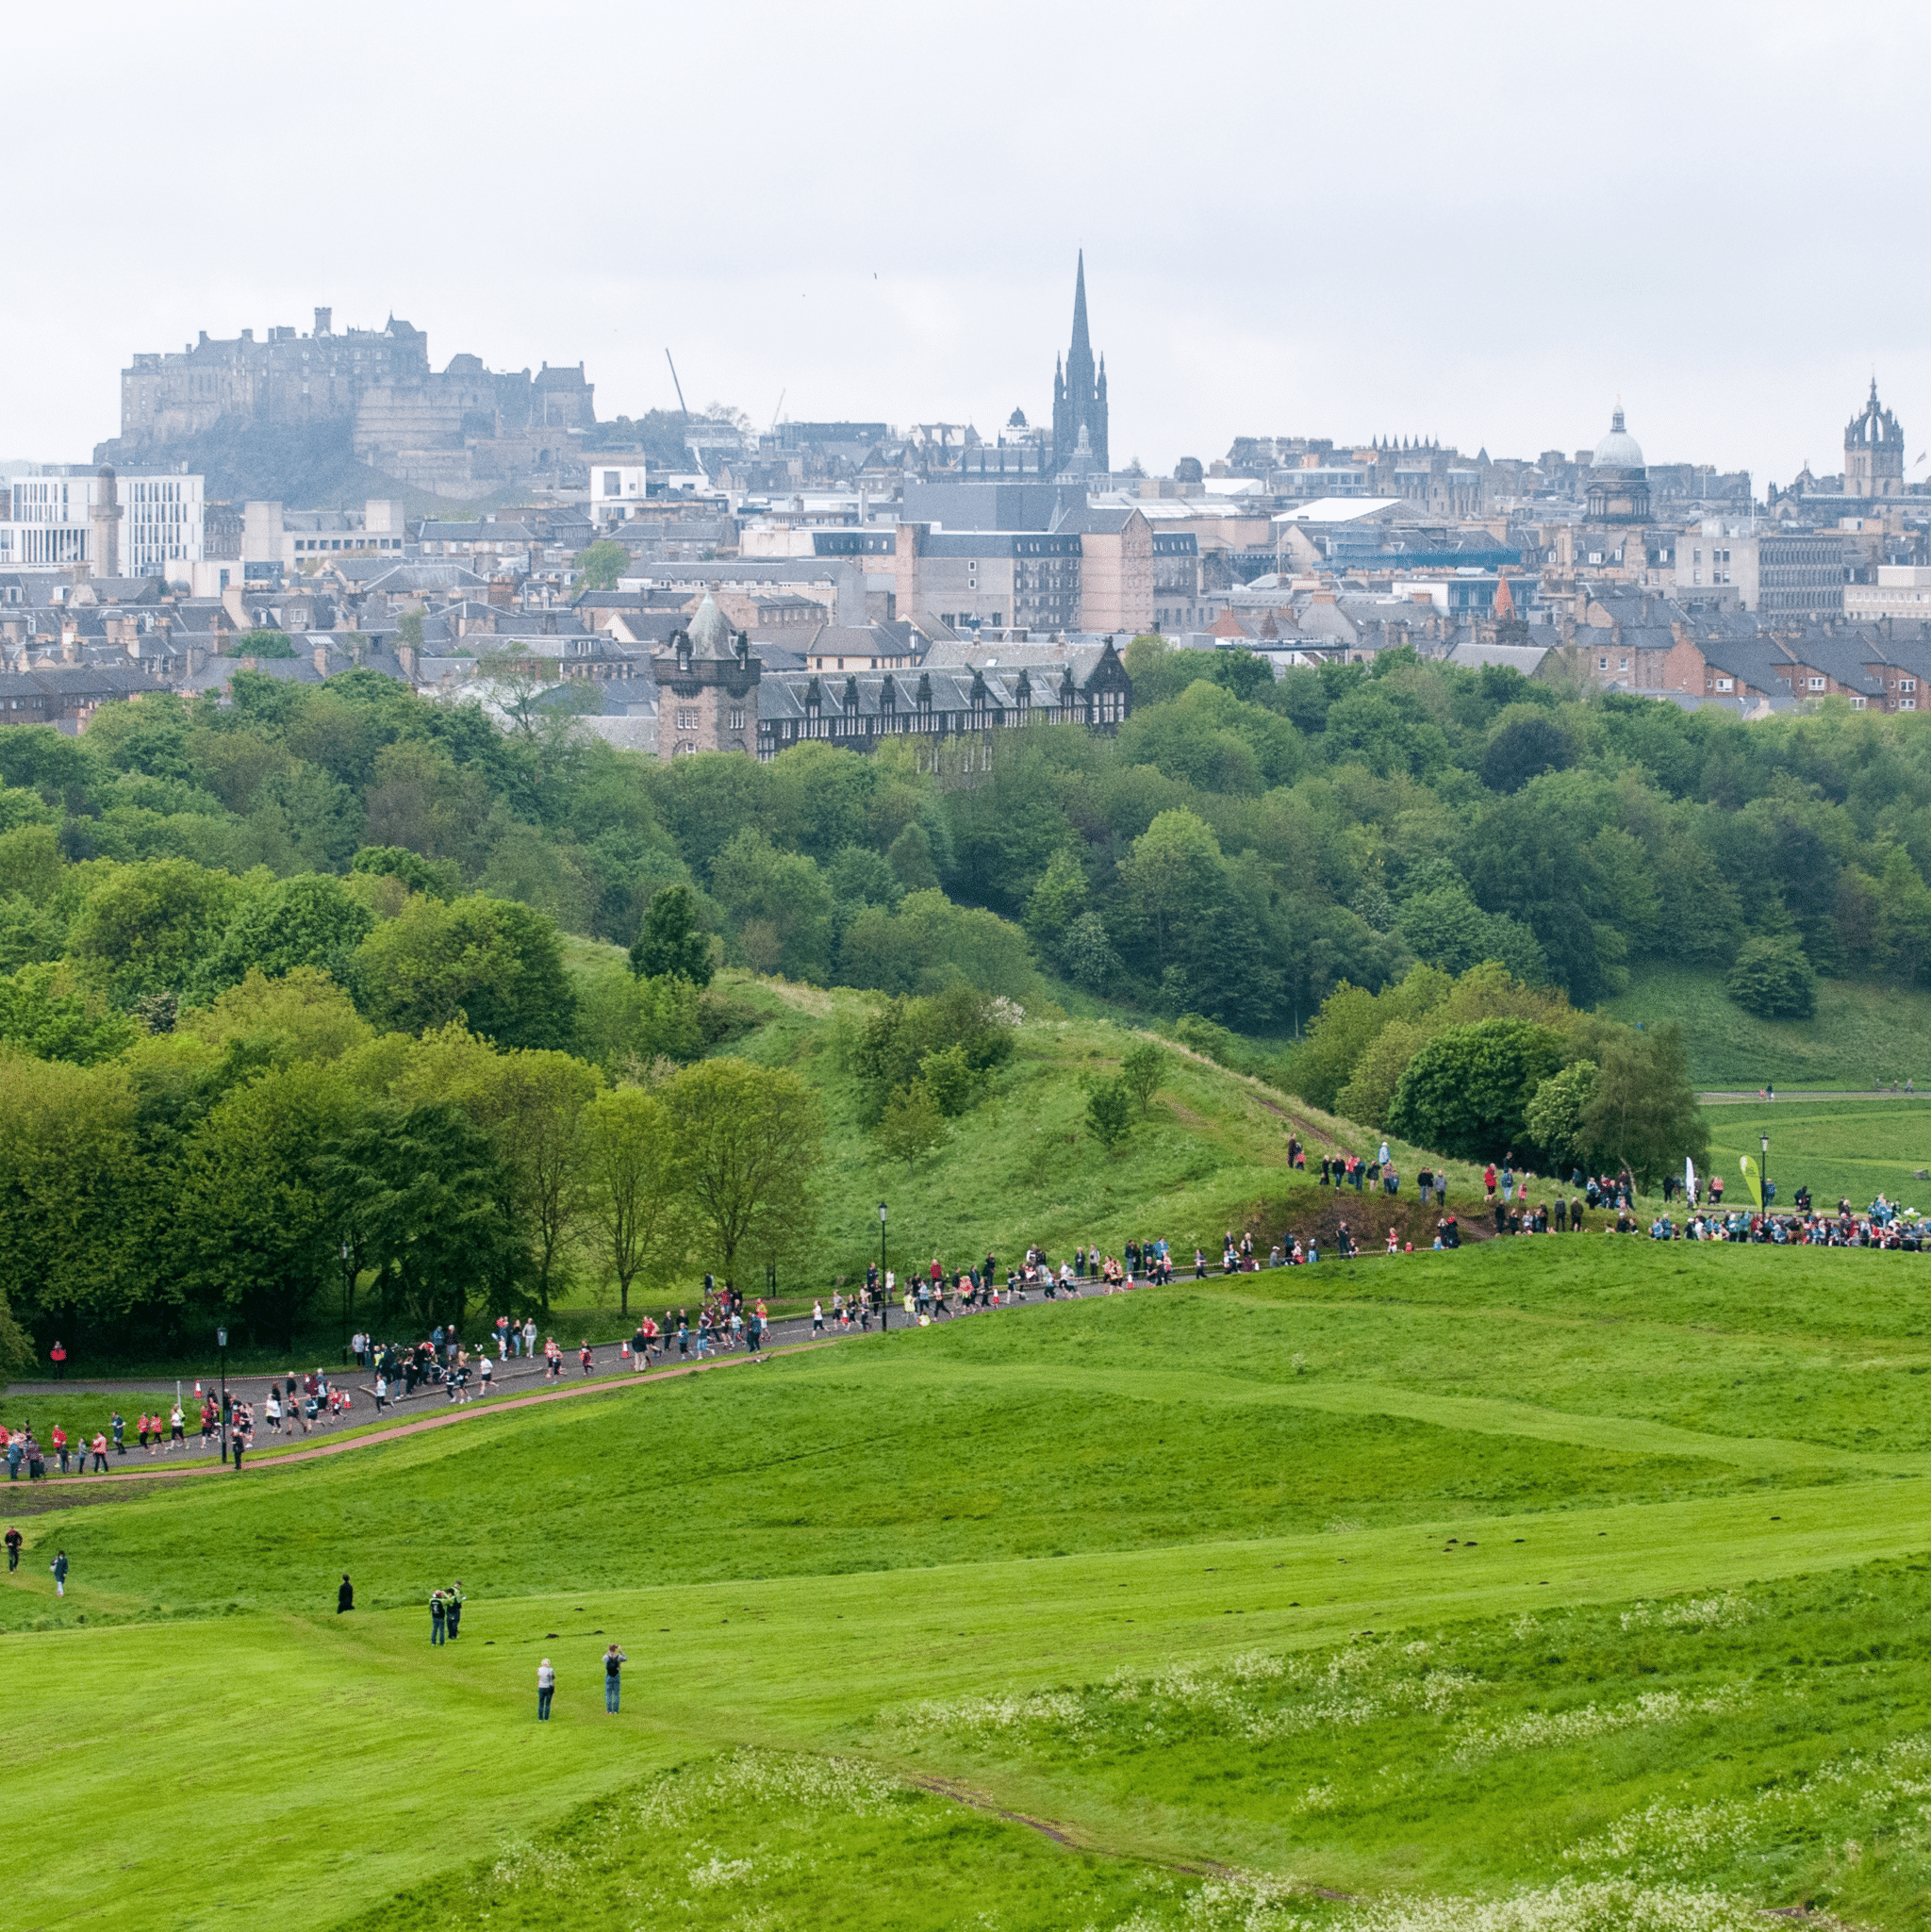 Image shows hundreds of runners running on the paths in holyrood park with Edinburgh Castle and Scott monument in the distance